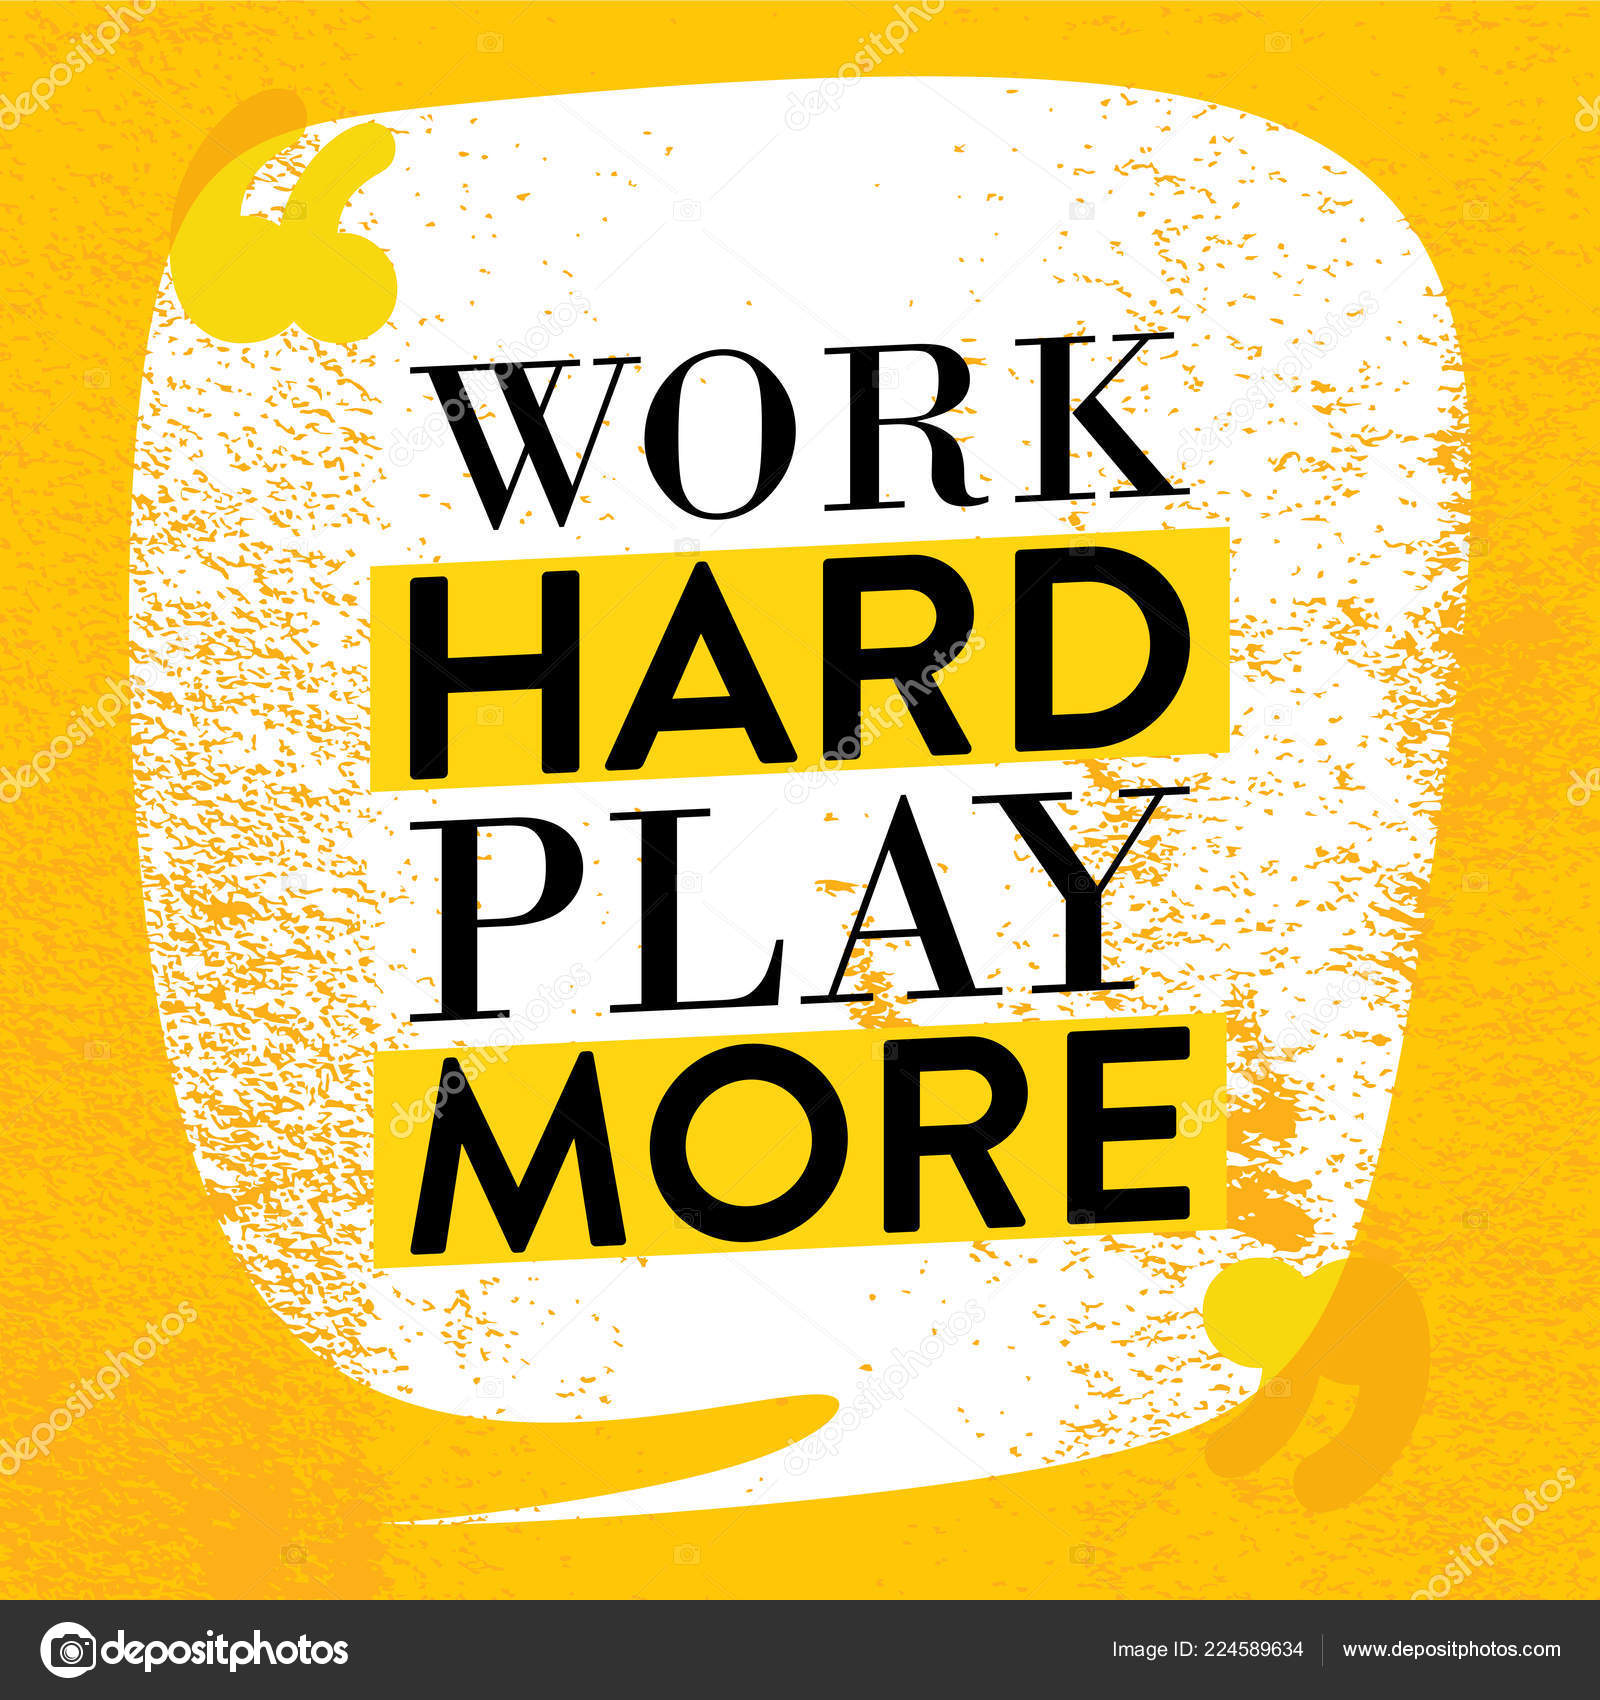 Motivational Quote Poster Work Hard Play More Inspiration ...